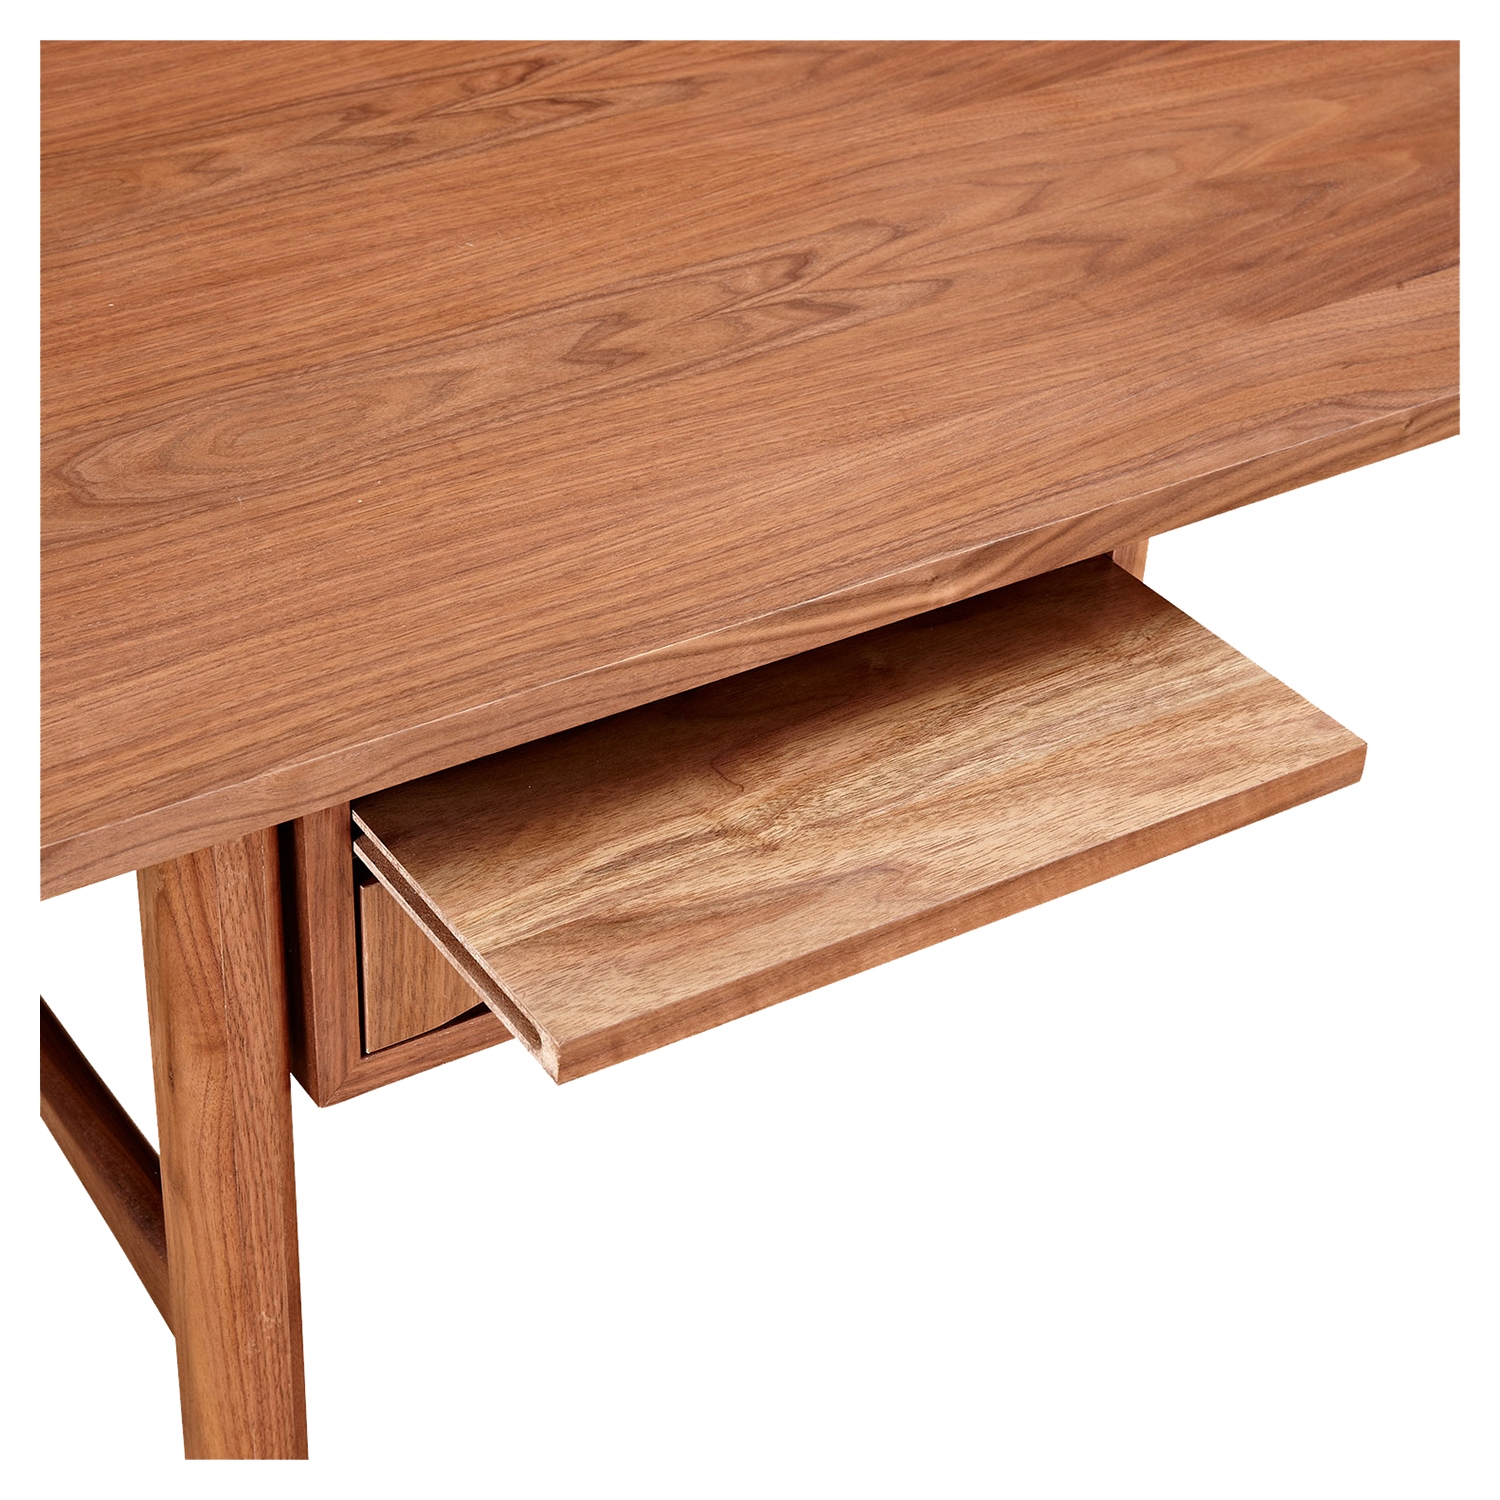 Hanna Office Desk - Walnut and Metallic Brass - NYEK-224423-D